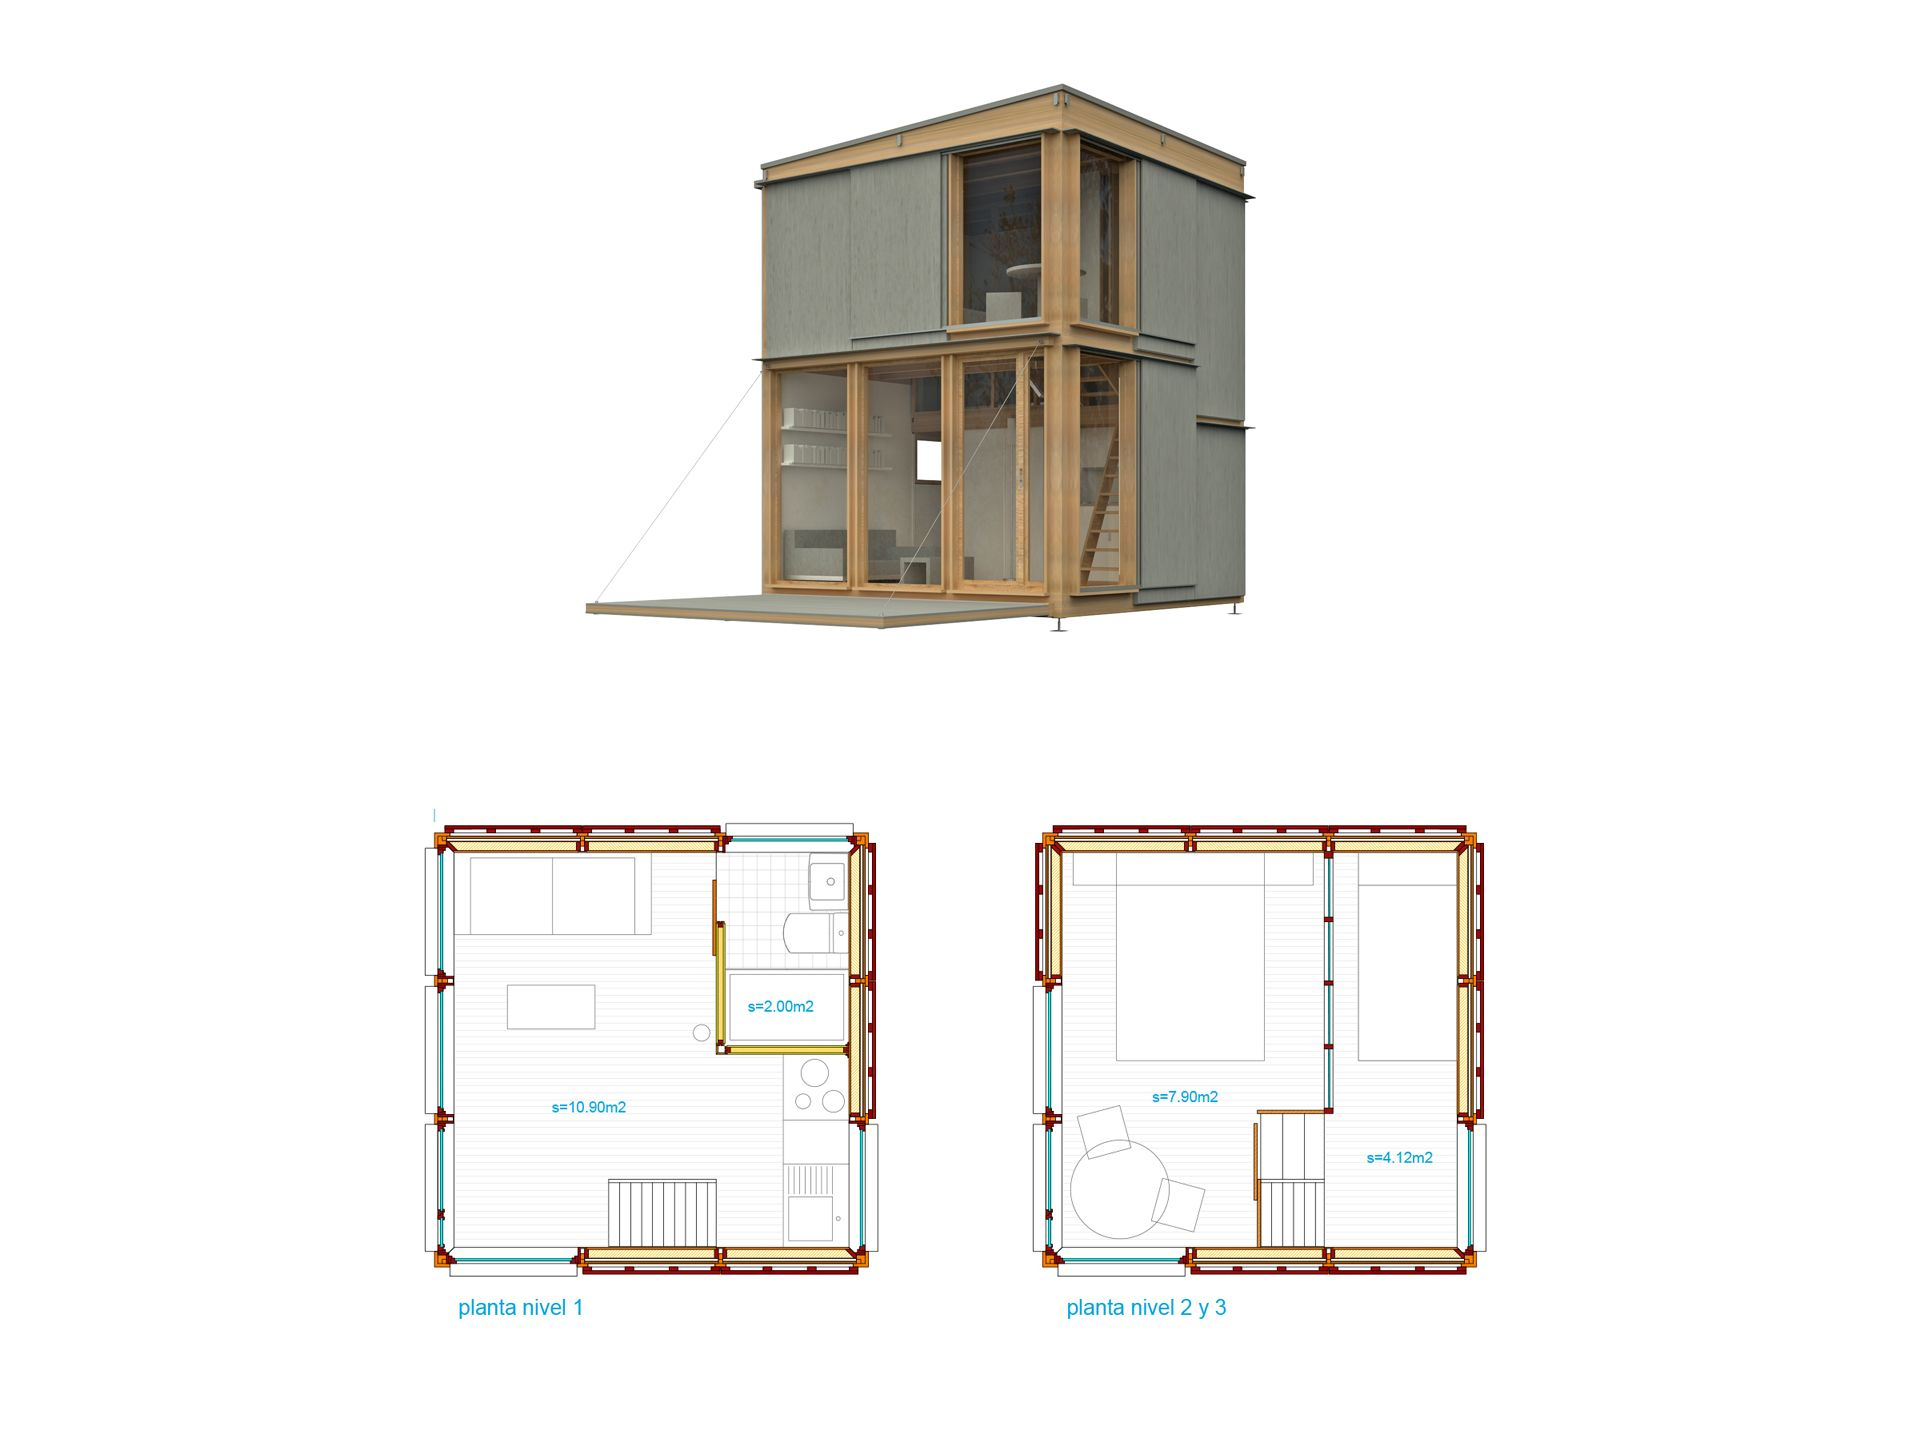 Https Www Ubuild Es Wp Content Uploads 2018 06 3x32a Mas Plantas 1920x1440 Jpg In 2021 Micro House Heating And Air Conditioning Diy Building